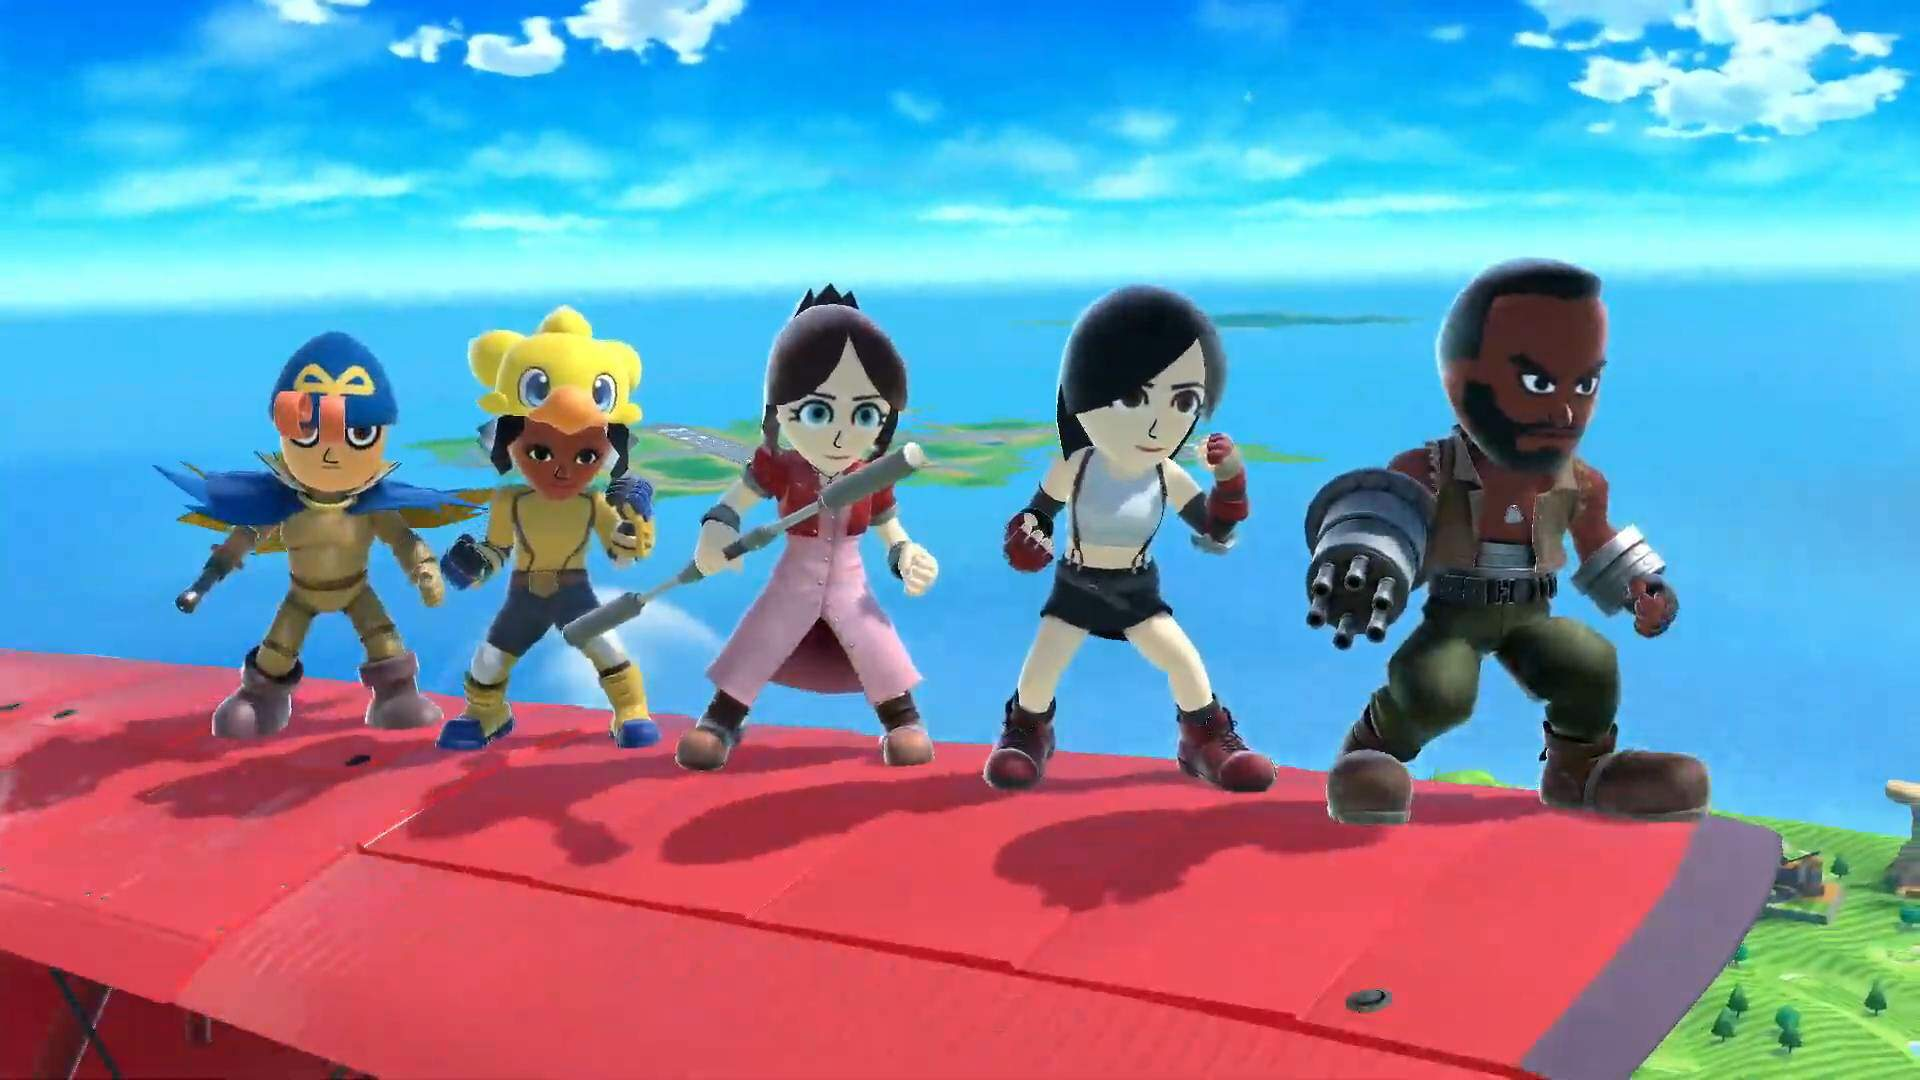 Super Mario RPG's Geno Joins the Super Smash Bros. Ultimate Roster as a Mii Fighter Costume